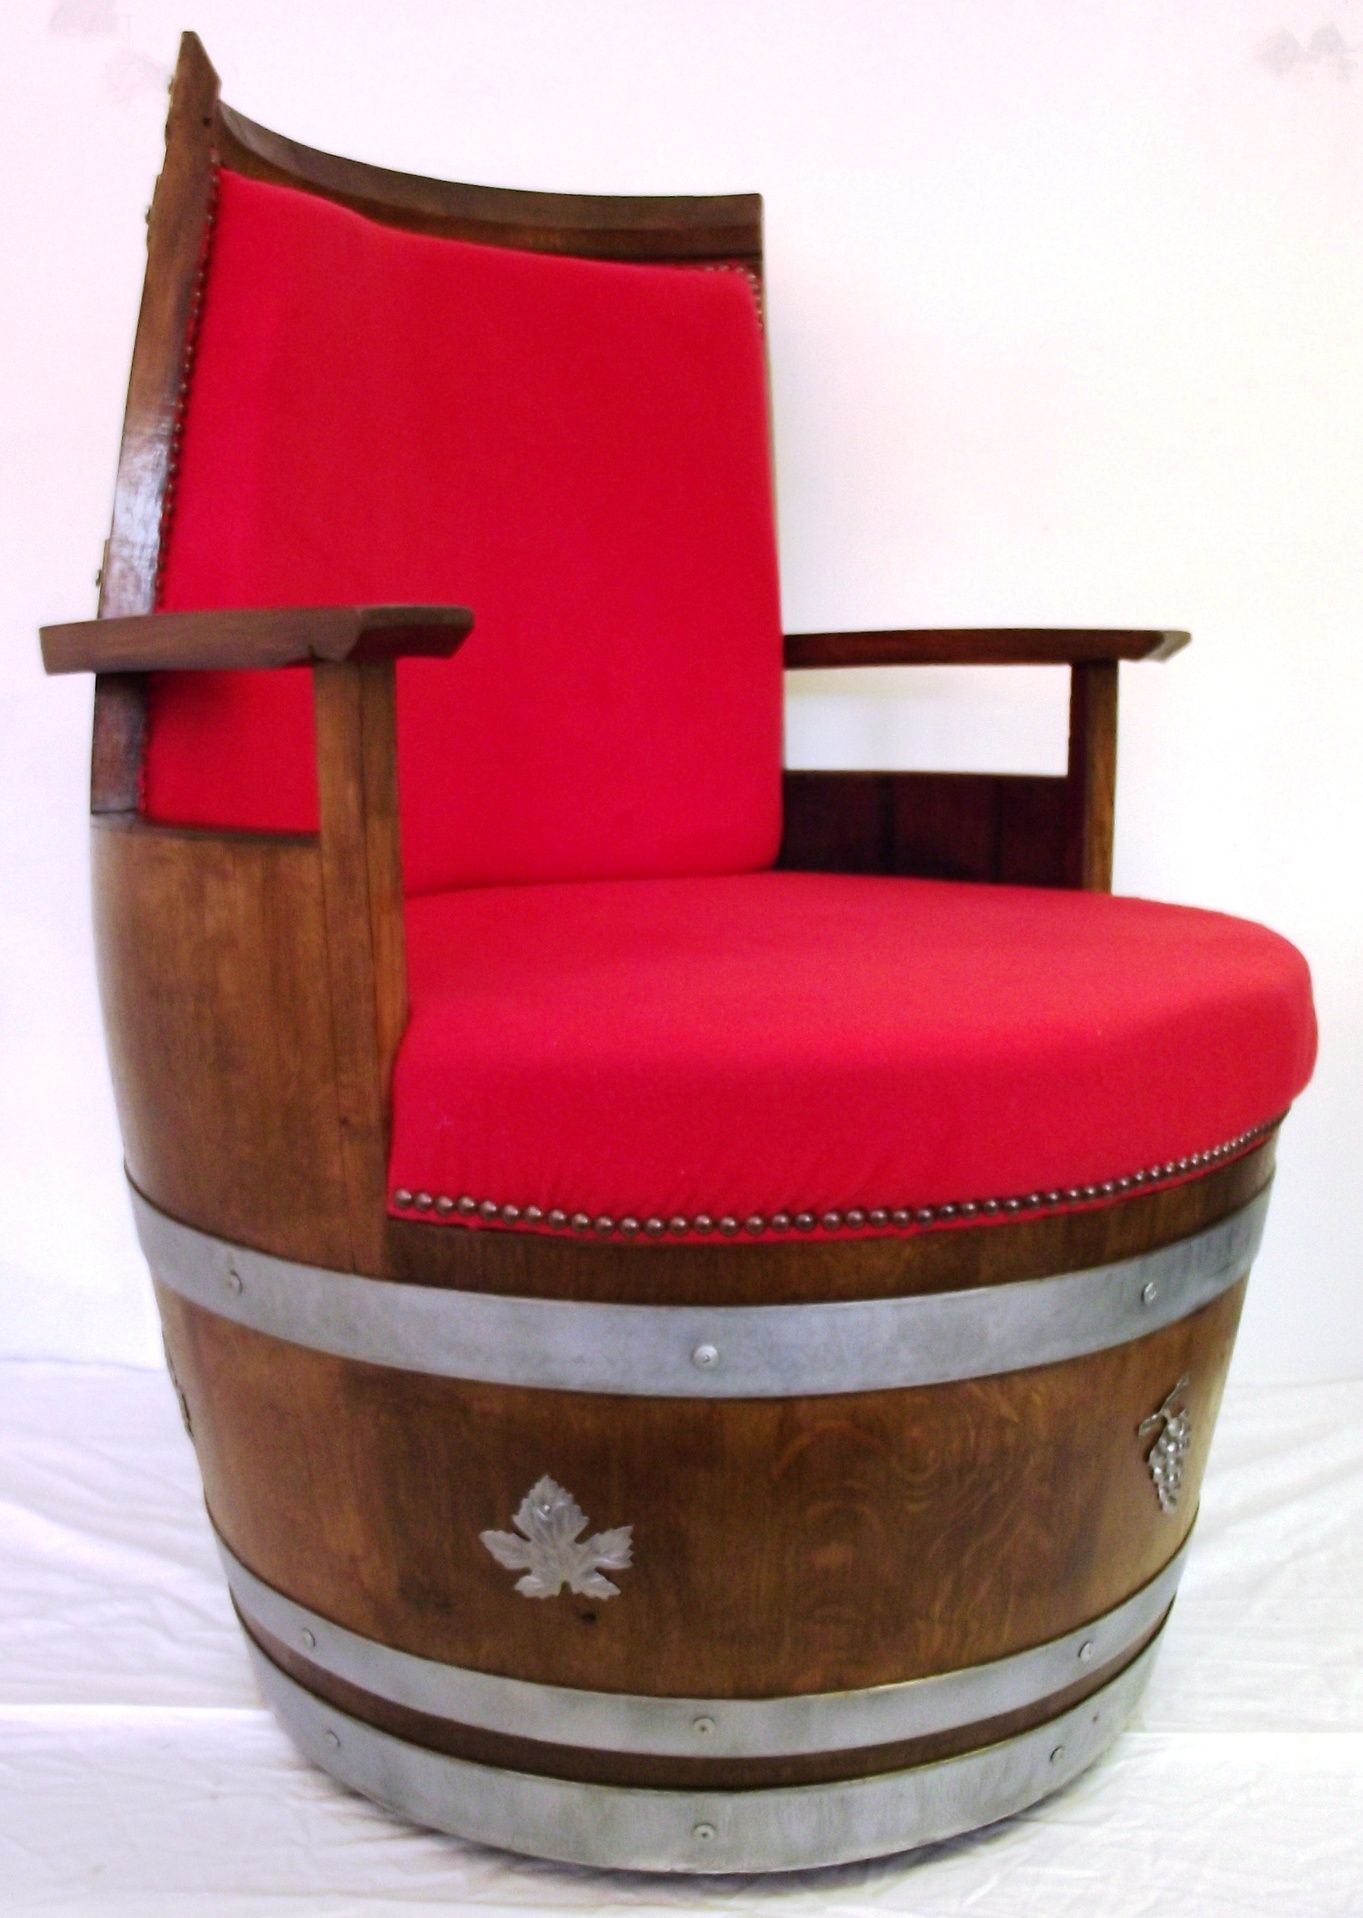 Ordered Barrel Chair X 4 Made Form French White Oak Old Wine Barrels The Upholstery Has Yet To Be Decided Open To Su Barrel Furniture Barrel Chair Barrel